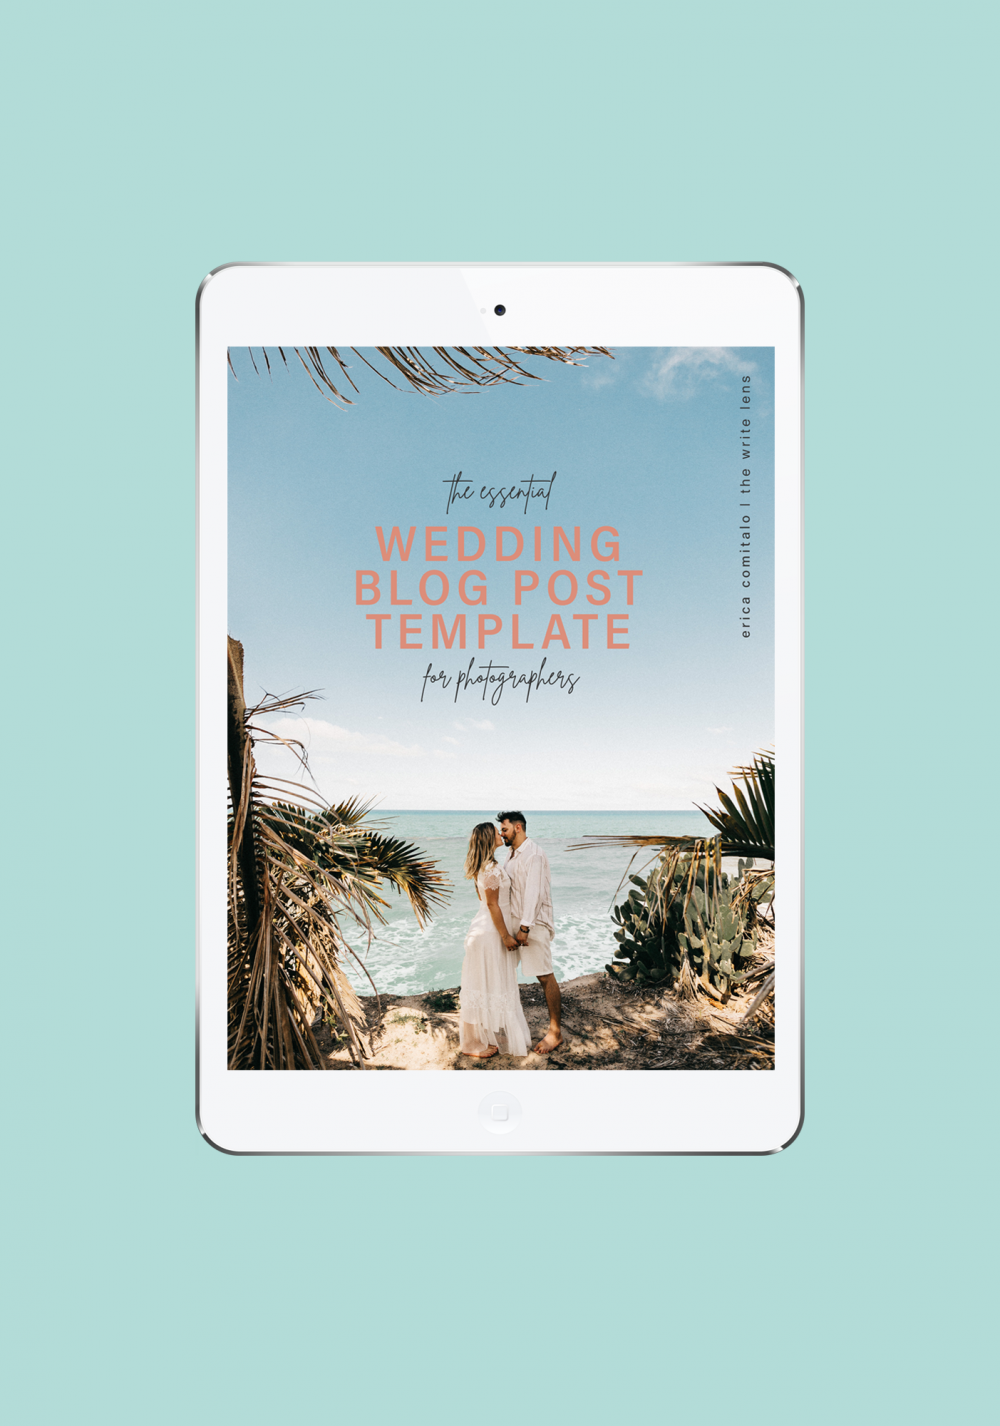 introducing the wedding blog post template for photographers